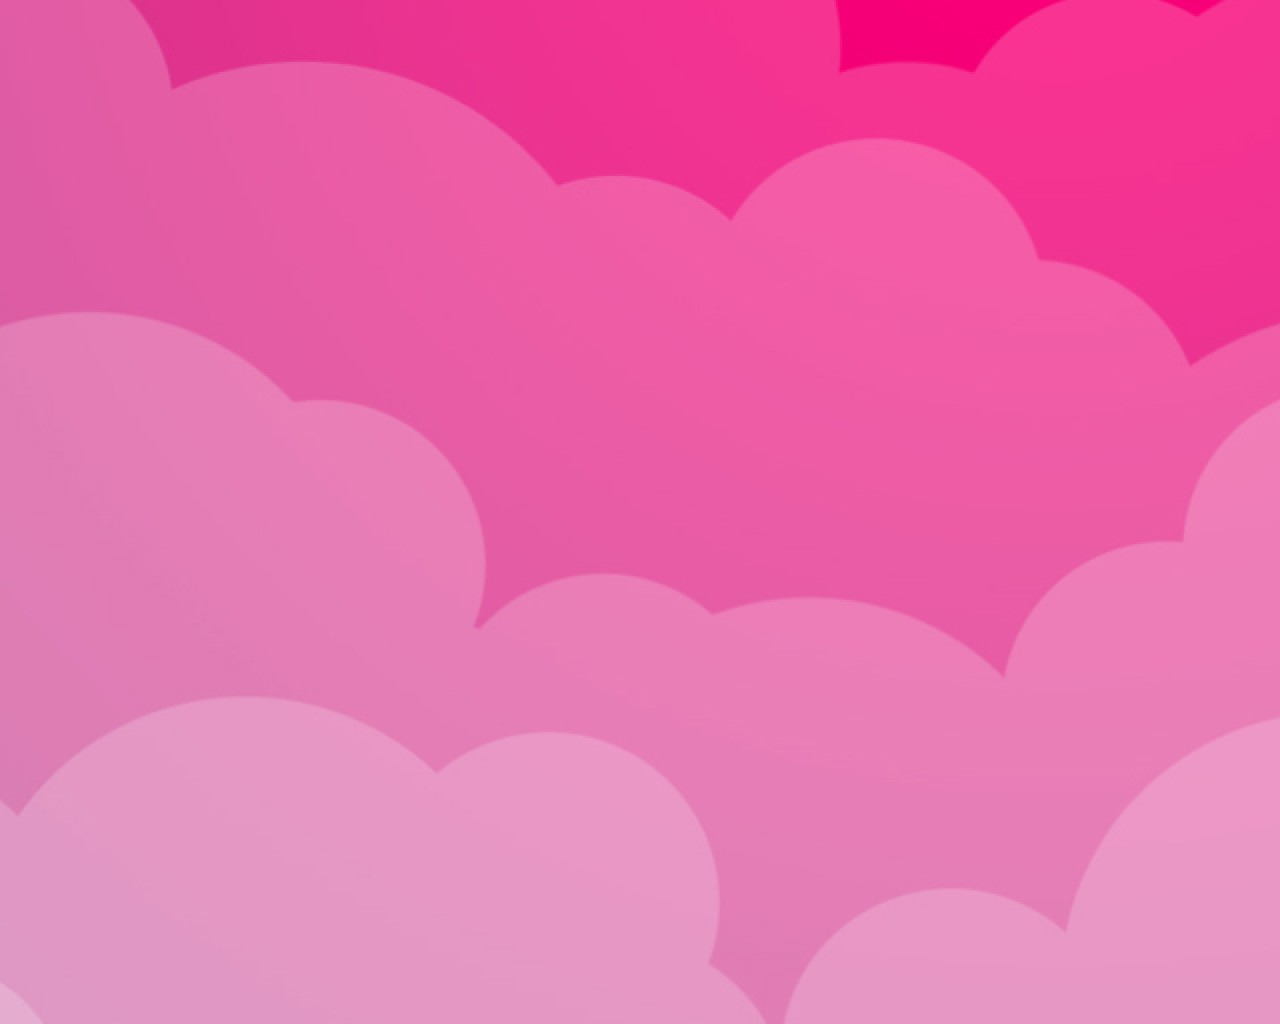 Cute Pink Wallpapers For IPhone